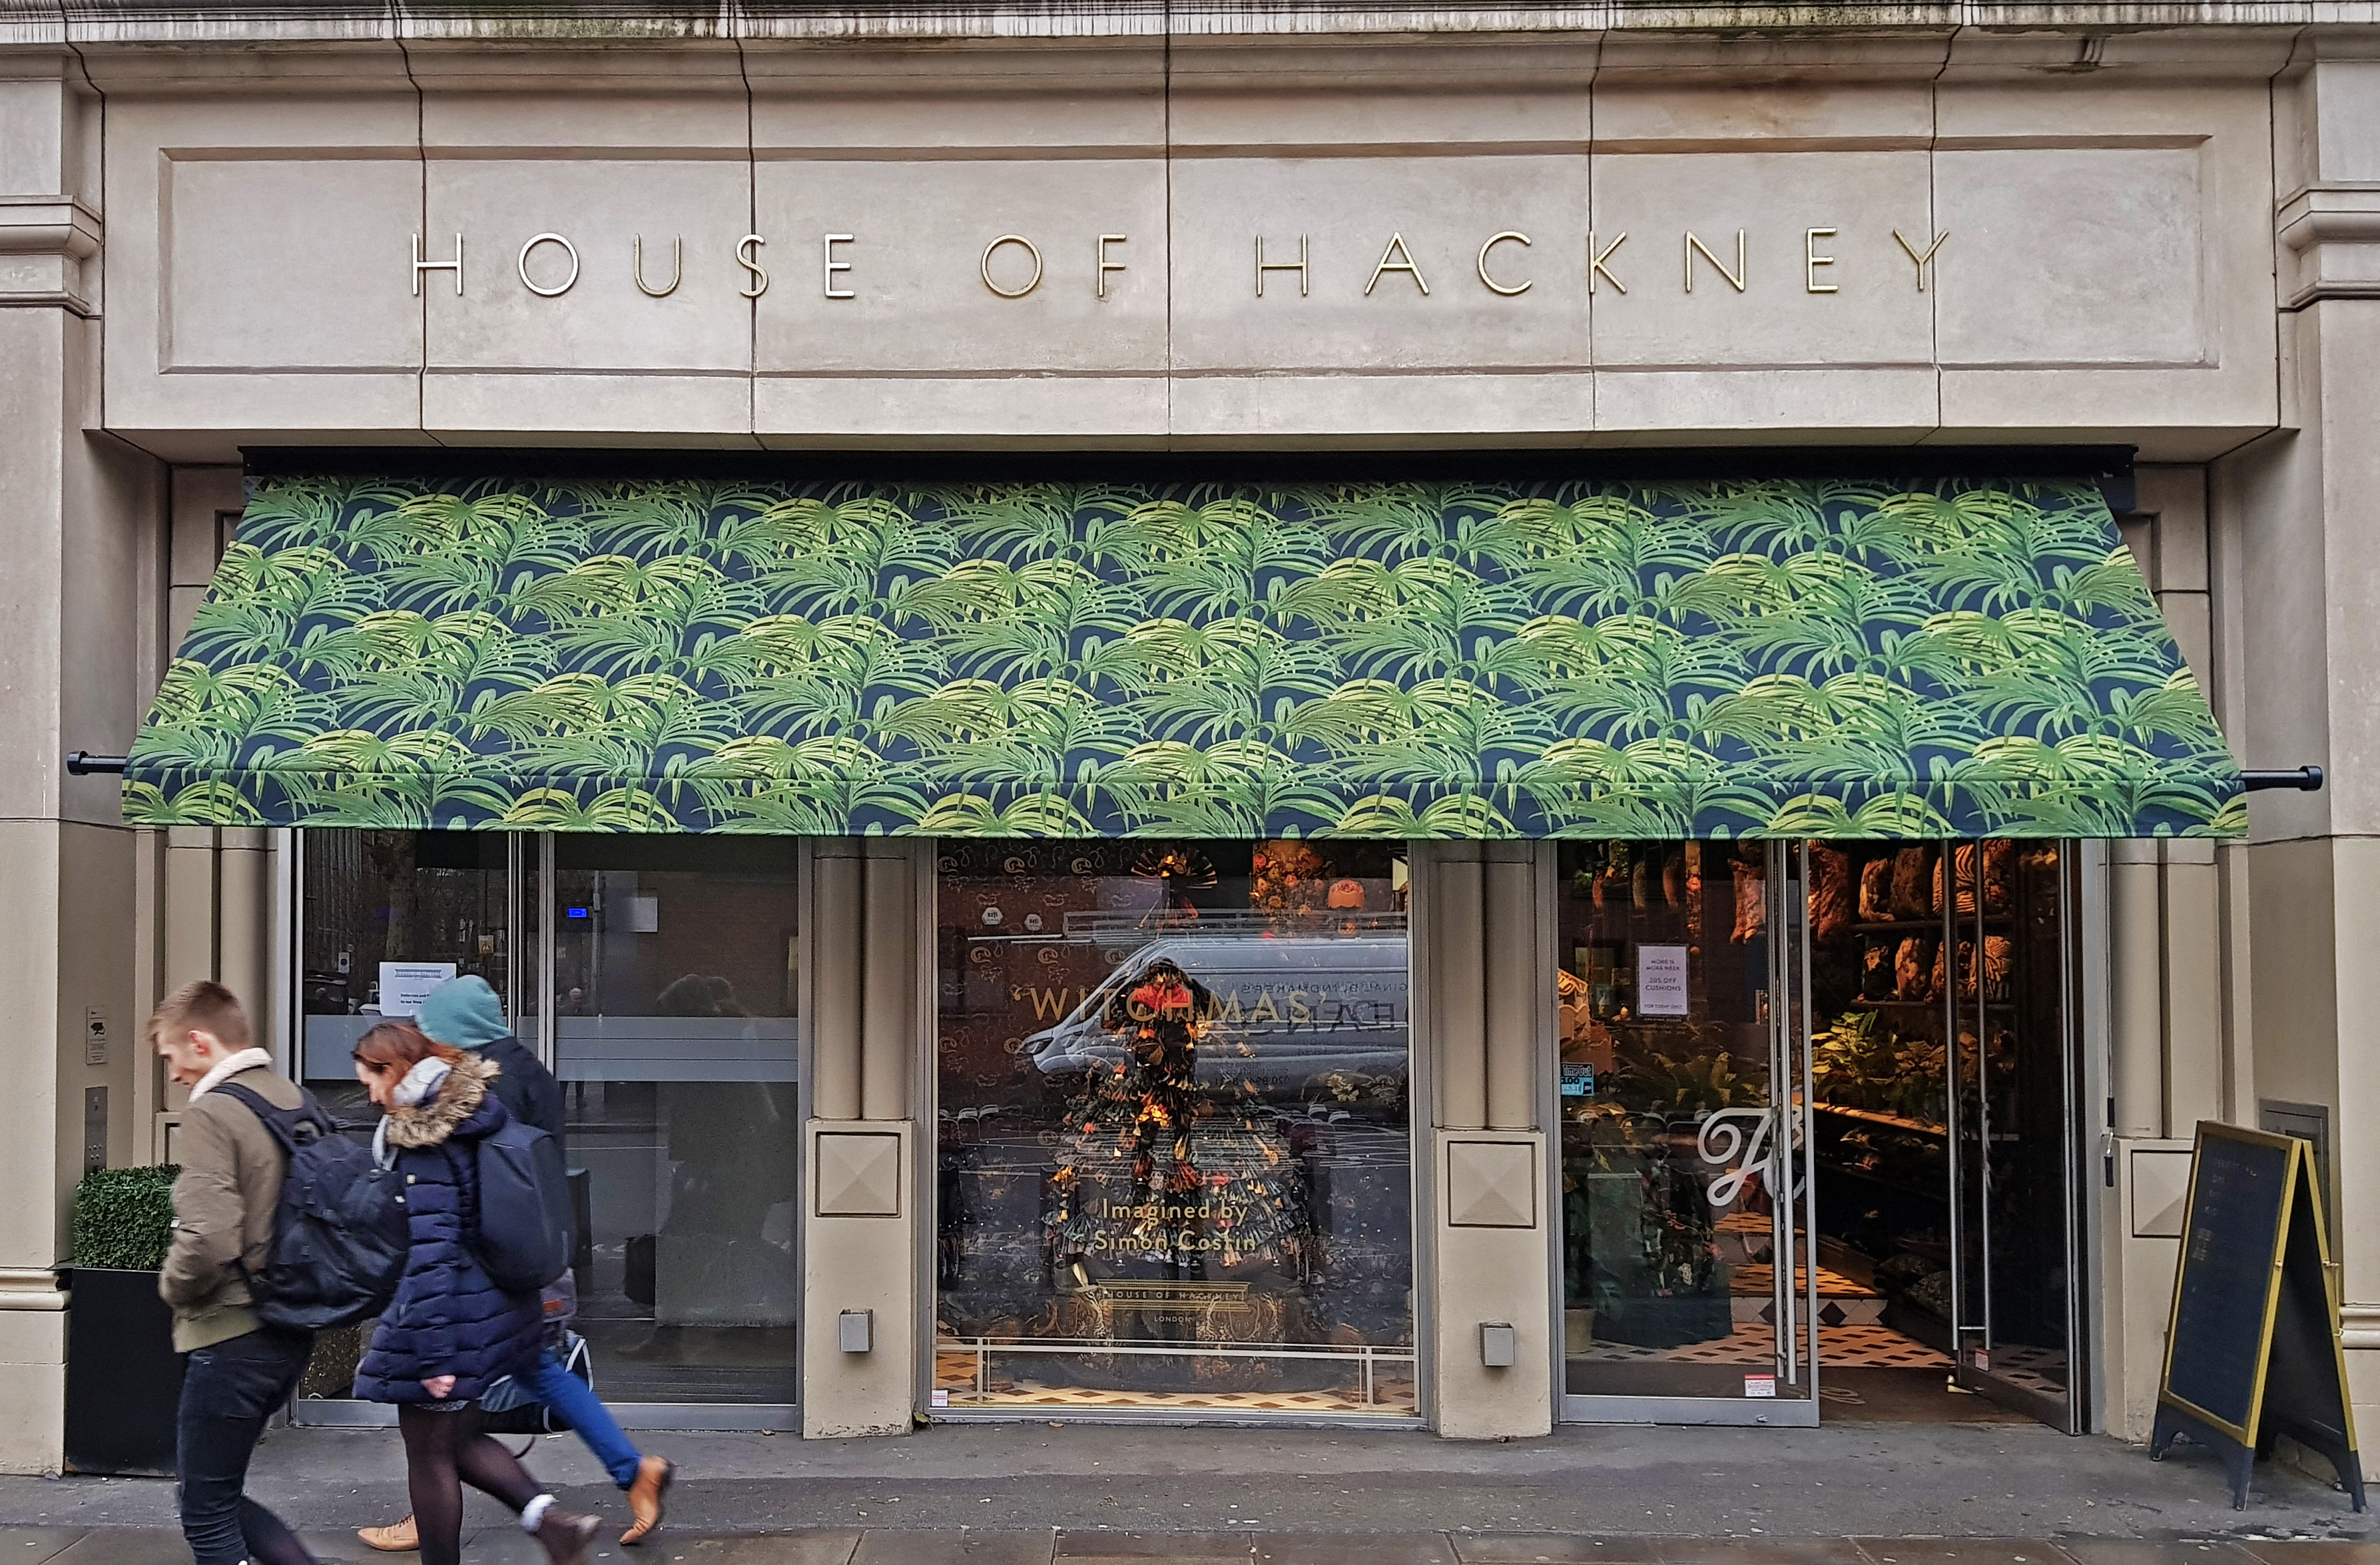 Greenwich awning at House of Hackney